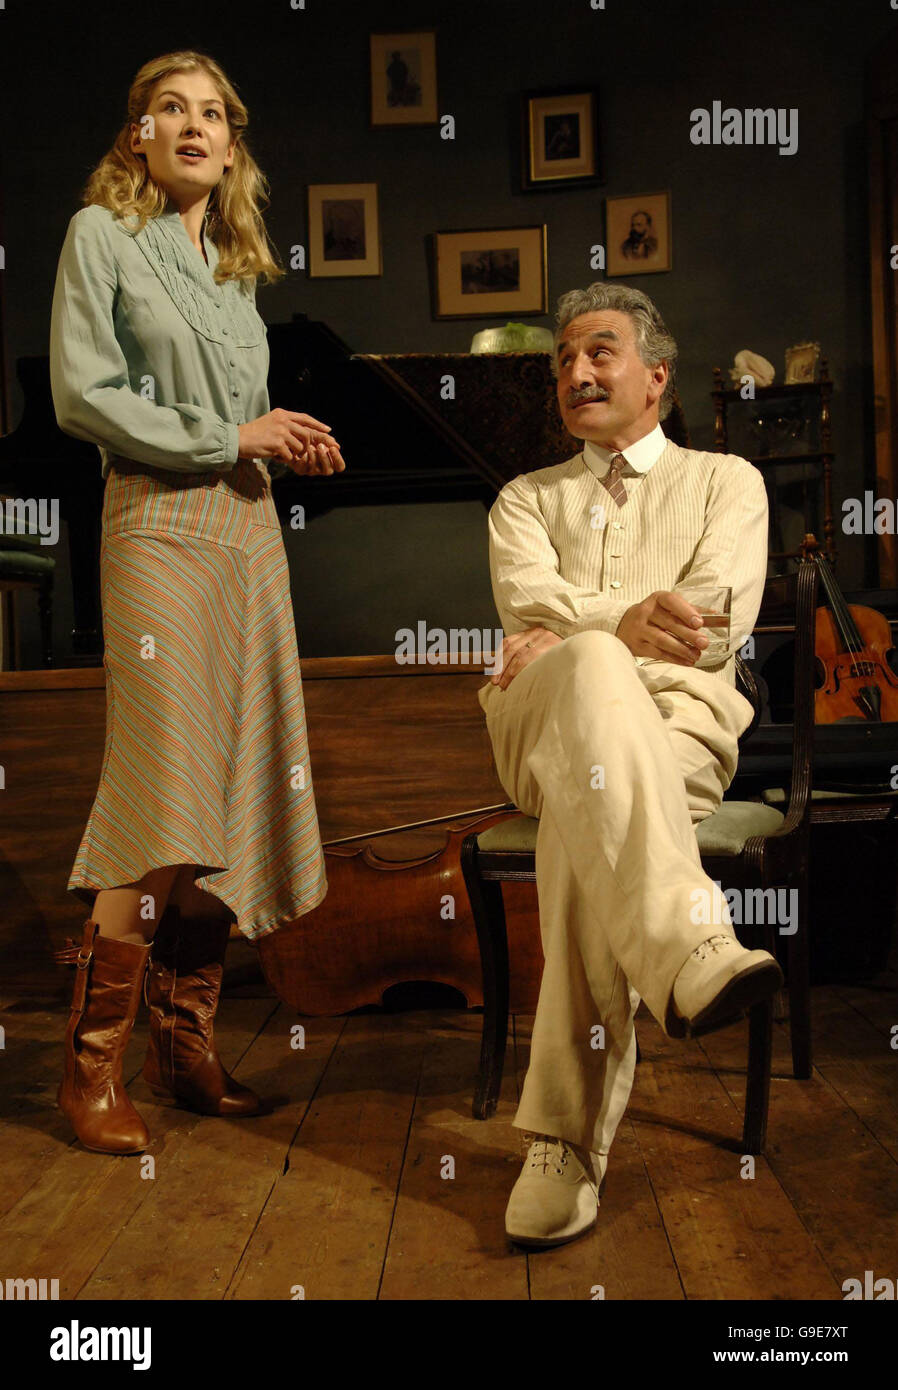 Rosamund Pike during a photocall for 'Performances' - Stock Image